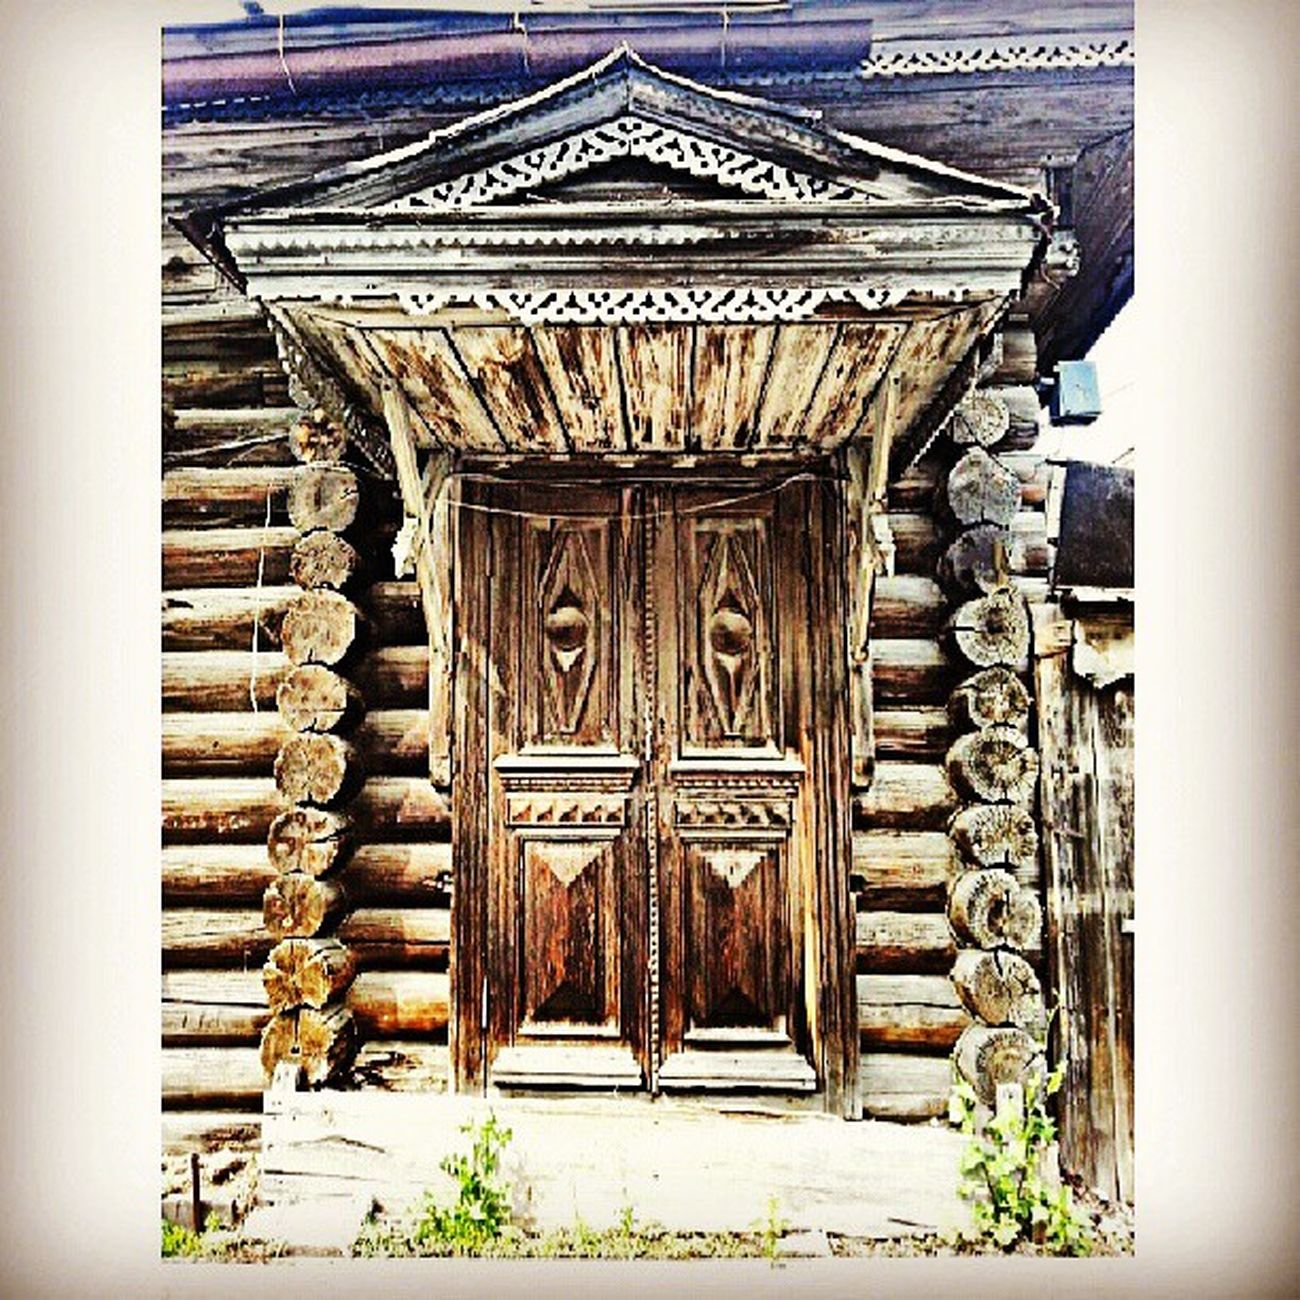 Дверь. Door. Beautyofrust Insta_shutter Instahub Rsa_ladies igs_photos ig_brilliant old doors webstapic teg instagroove oldwood jj AlmaProject RussianAlma photorussia Ялуторовск Россия Сибирь Russia Syberia rsa_doorsandwindows doorsonly doorsondoors tbt